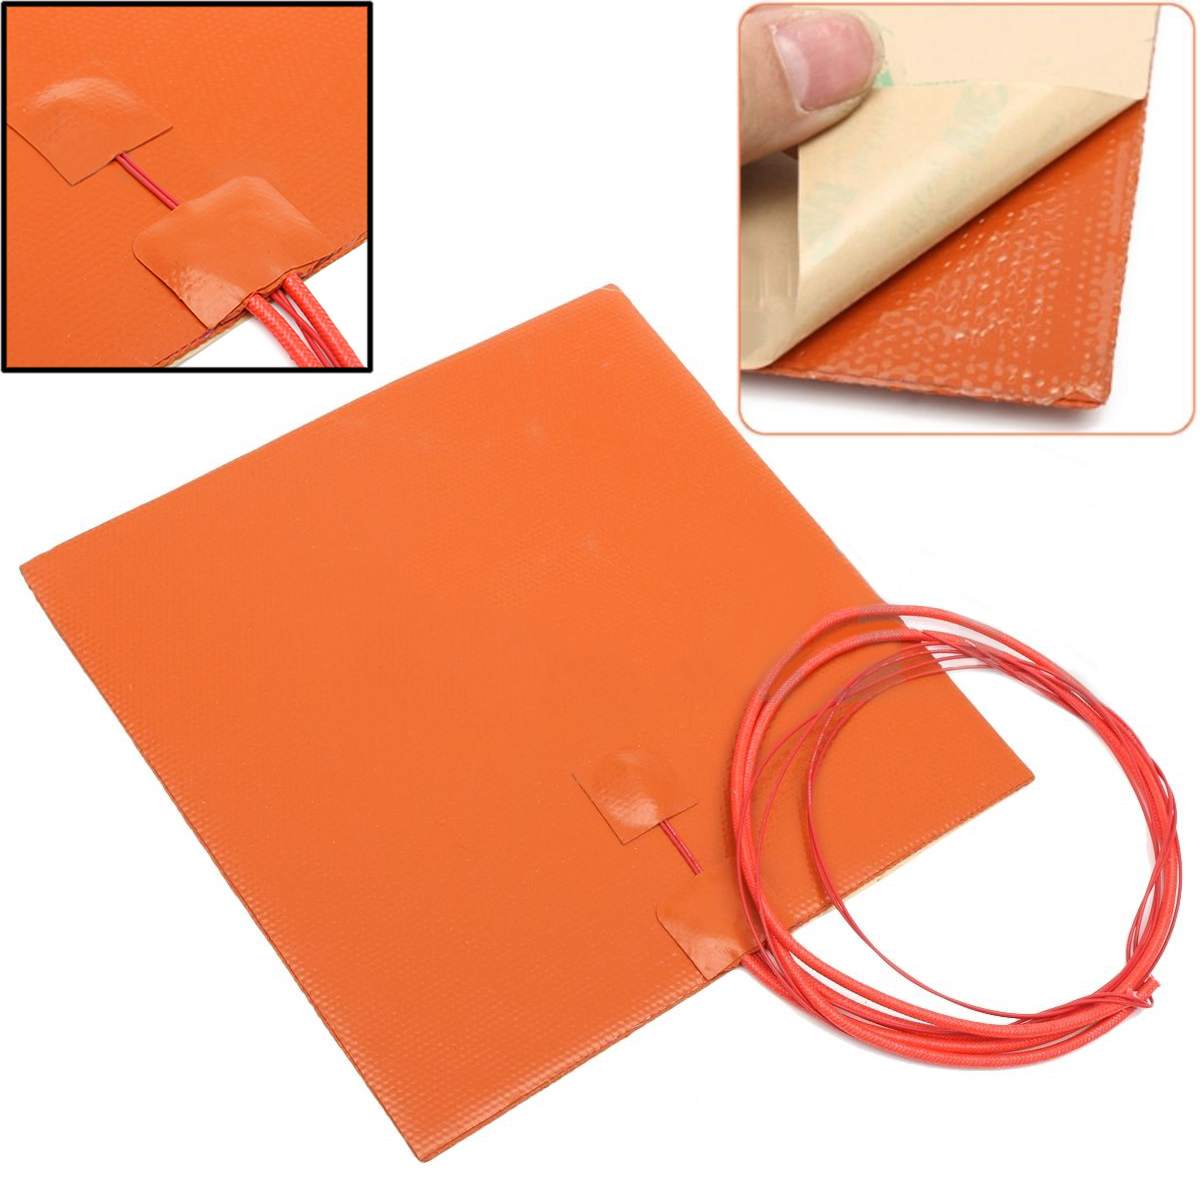 1pc Durable 200W 12V Rubber Silicone Heater Pad For 3D Printer Duplicating Machines Heated Bed Mayitr Heating Mat 200*200mm um 2 go 3d printer parts upgrade silicone rubber heater mat heated bed pt100 sensor for ultimaker 2 go build platform